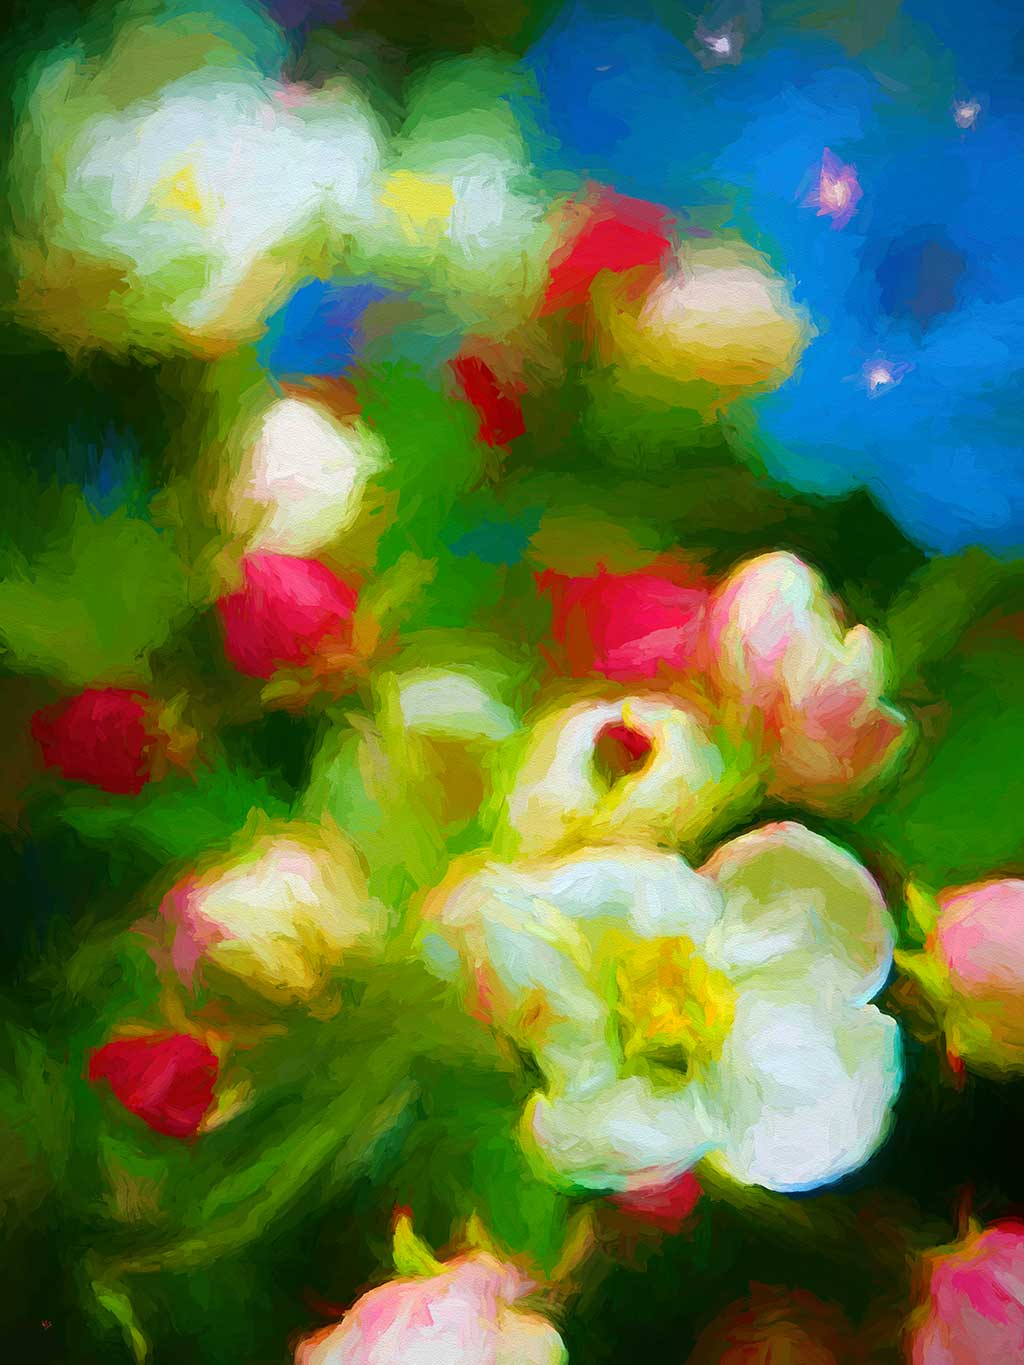 Apple White Flowers Red Buds in a digital painting on Art Canvas Print by Wieslaw Sadurski